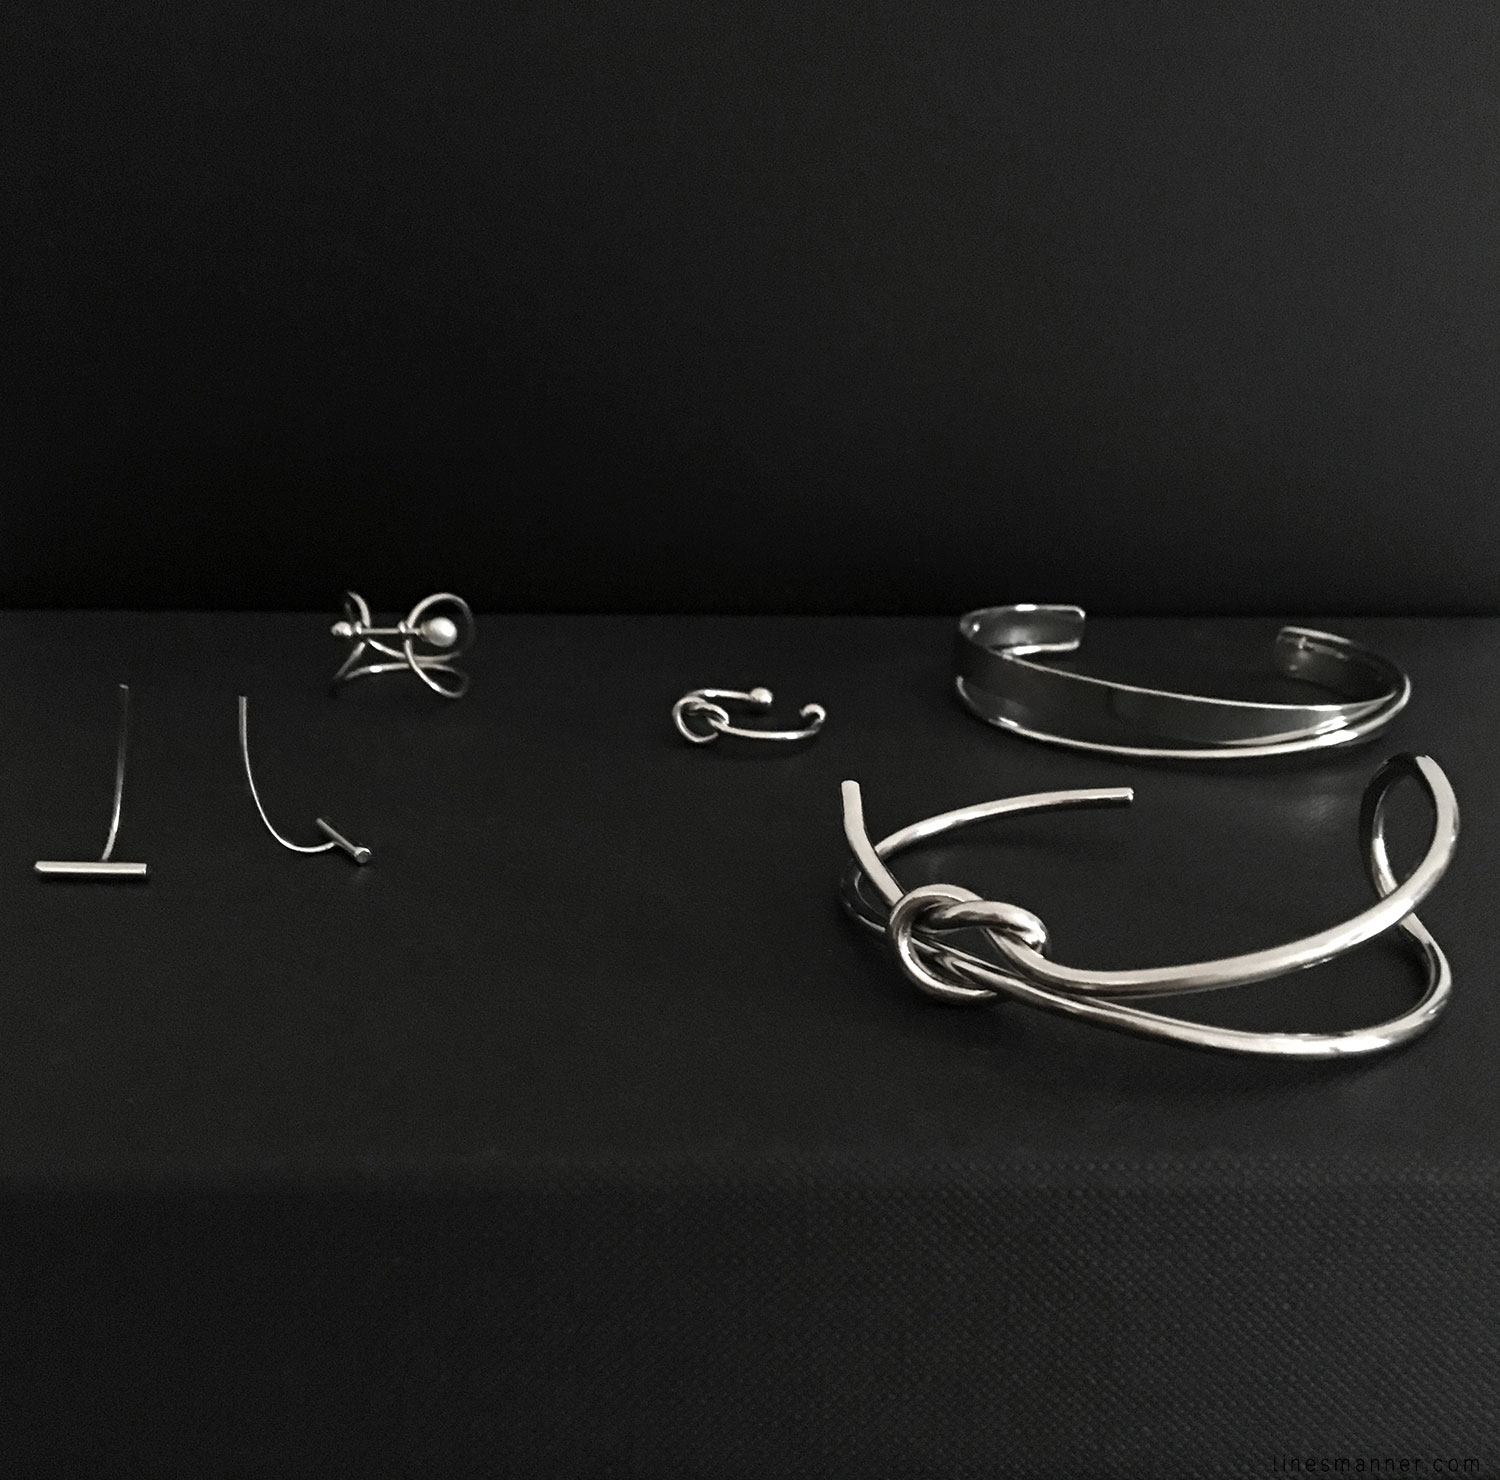 Lines-Manner-Flatlay-Monochrome-Essentials-Details-Jewellery-Hardware-Morning_routine-Black_and_white-White-Minimal-Impact-Classics-Timeless-Simplicity-2